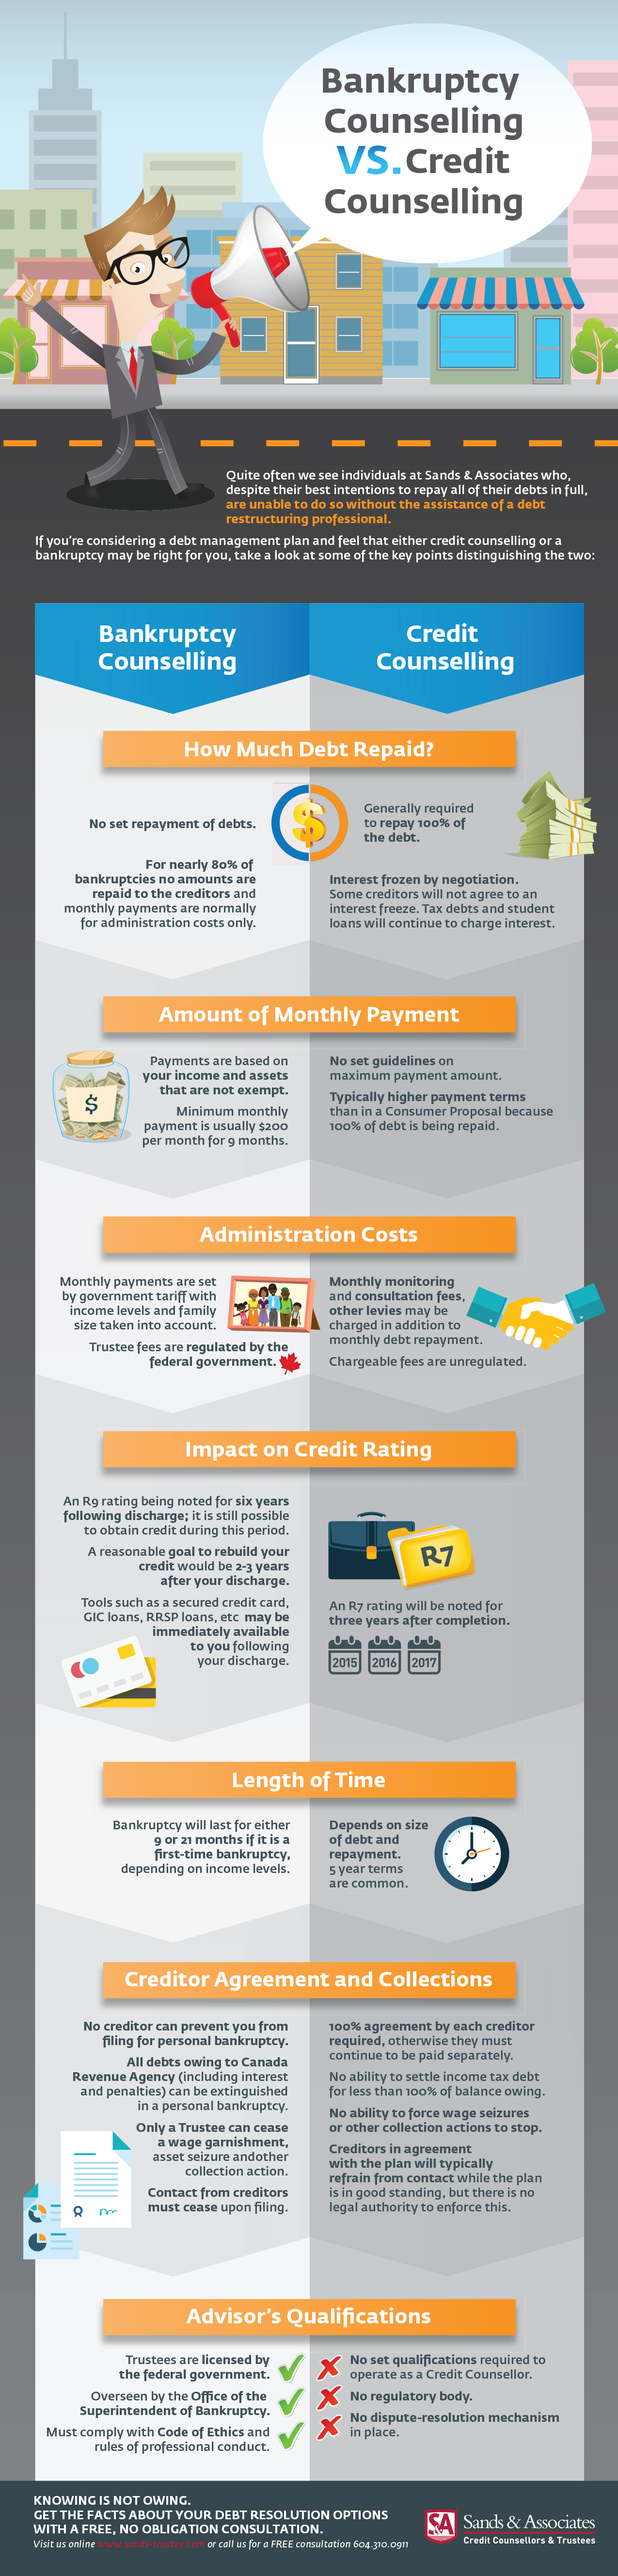 Bankruptcy VS Credit Counselling